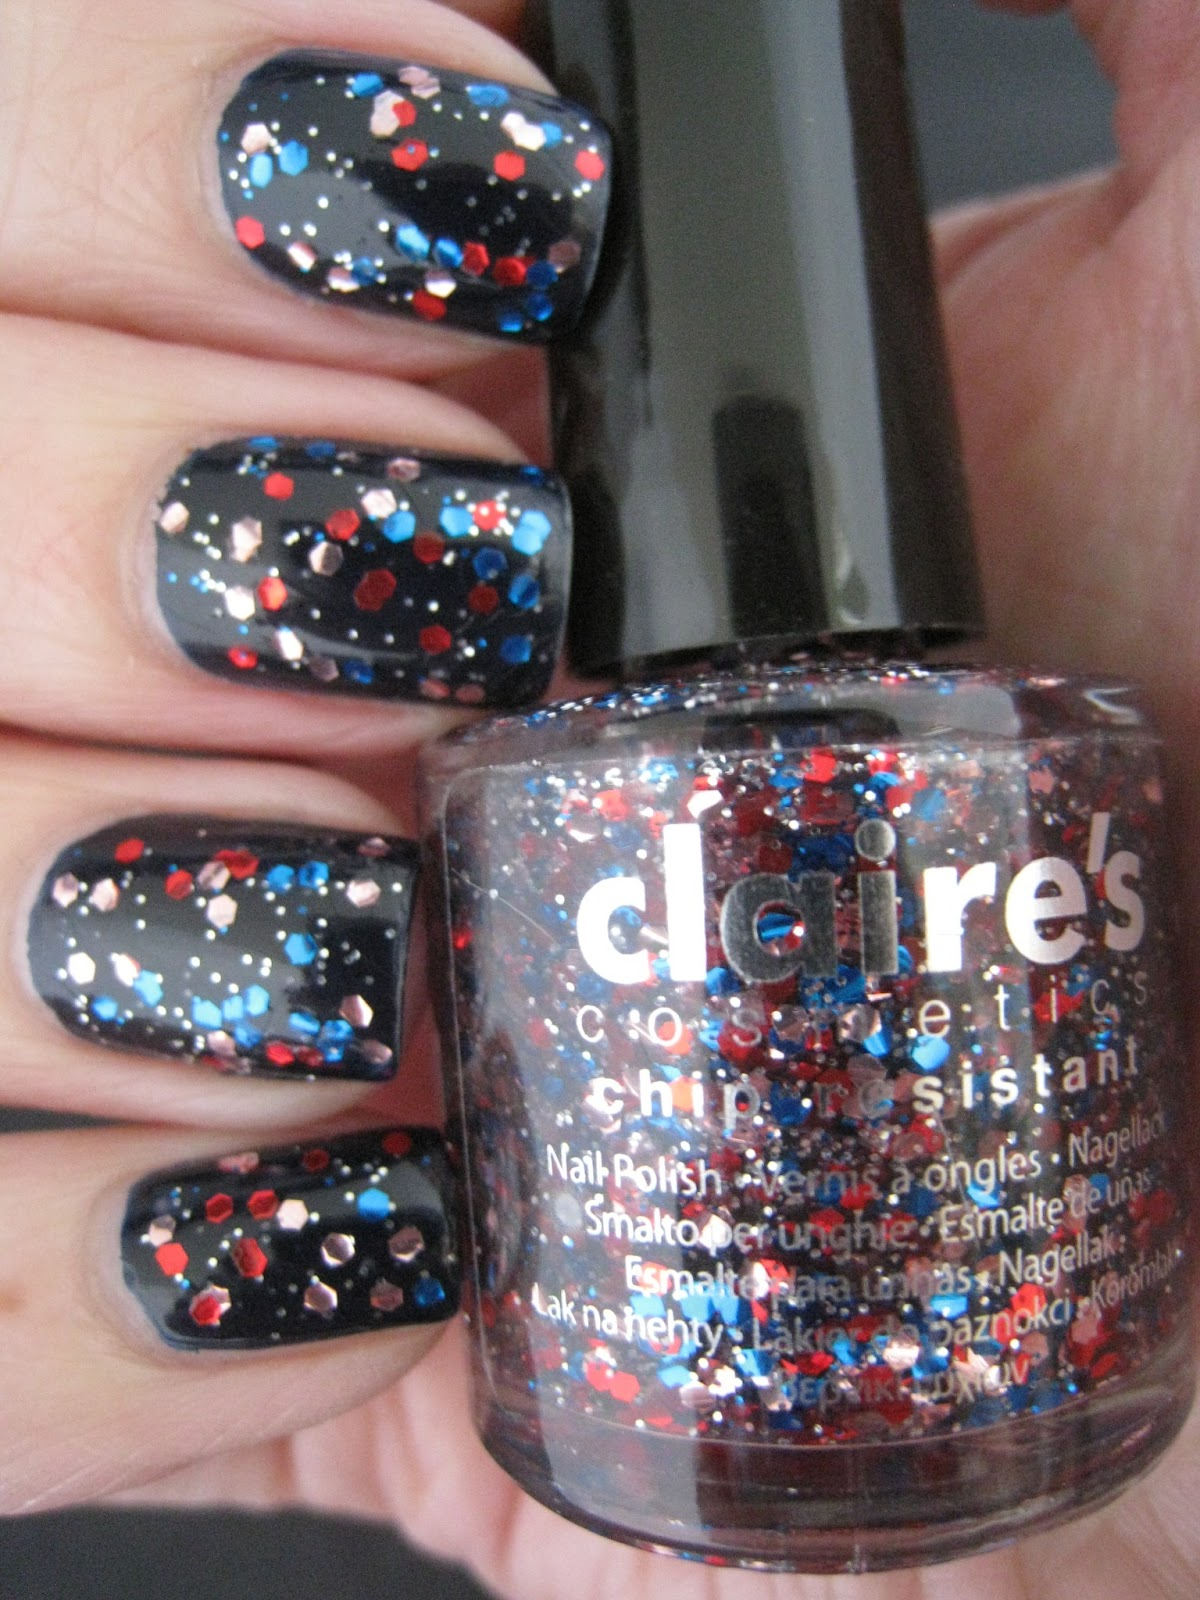 Naily Perfect Blue Red And Pink Glitter Or Why Claire S Accessories Should Name Their Polishes